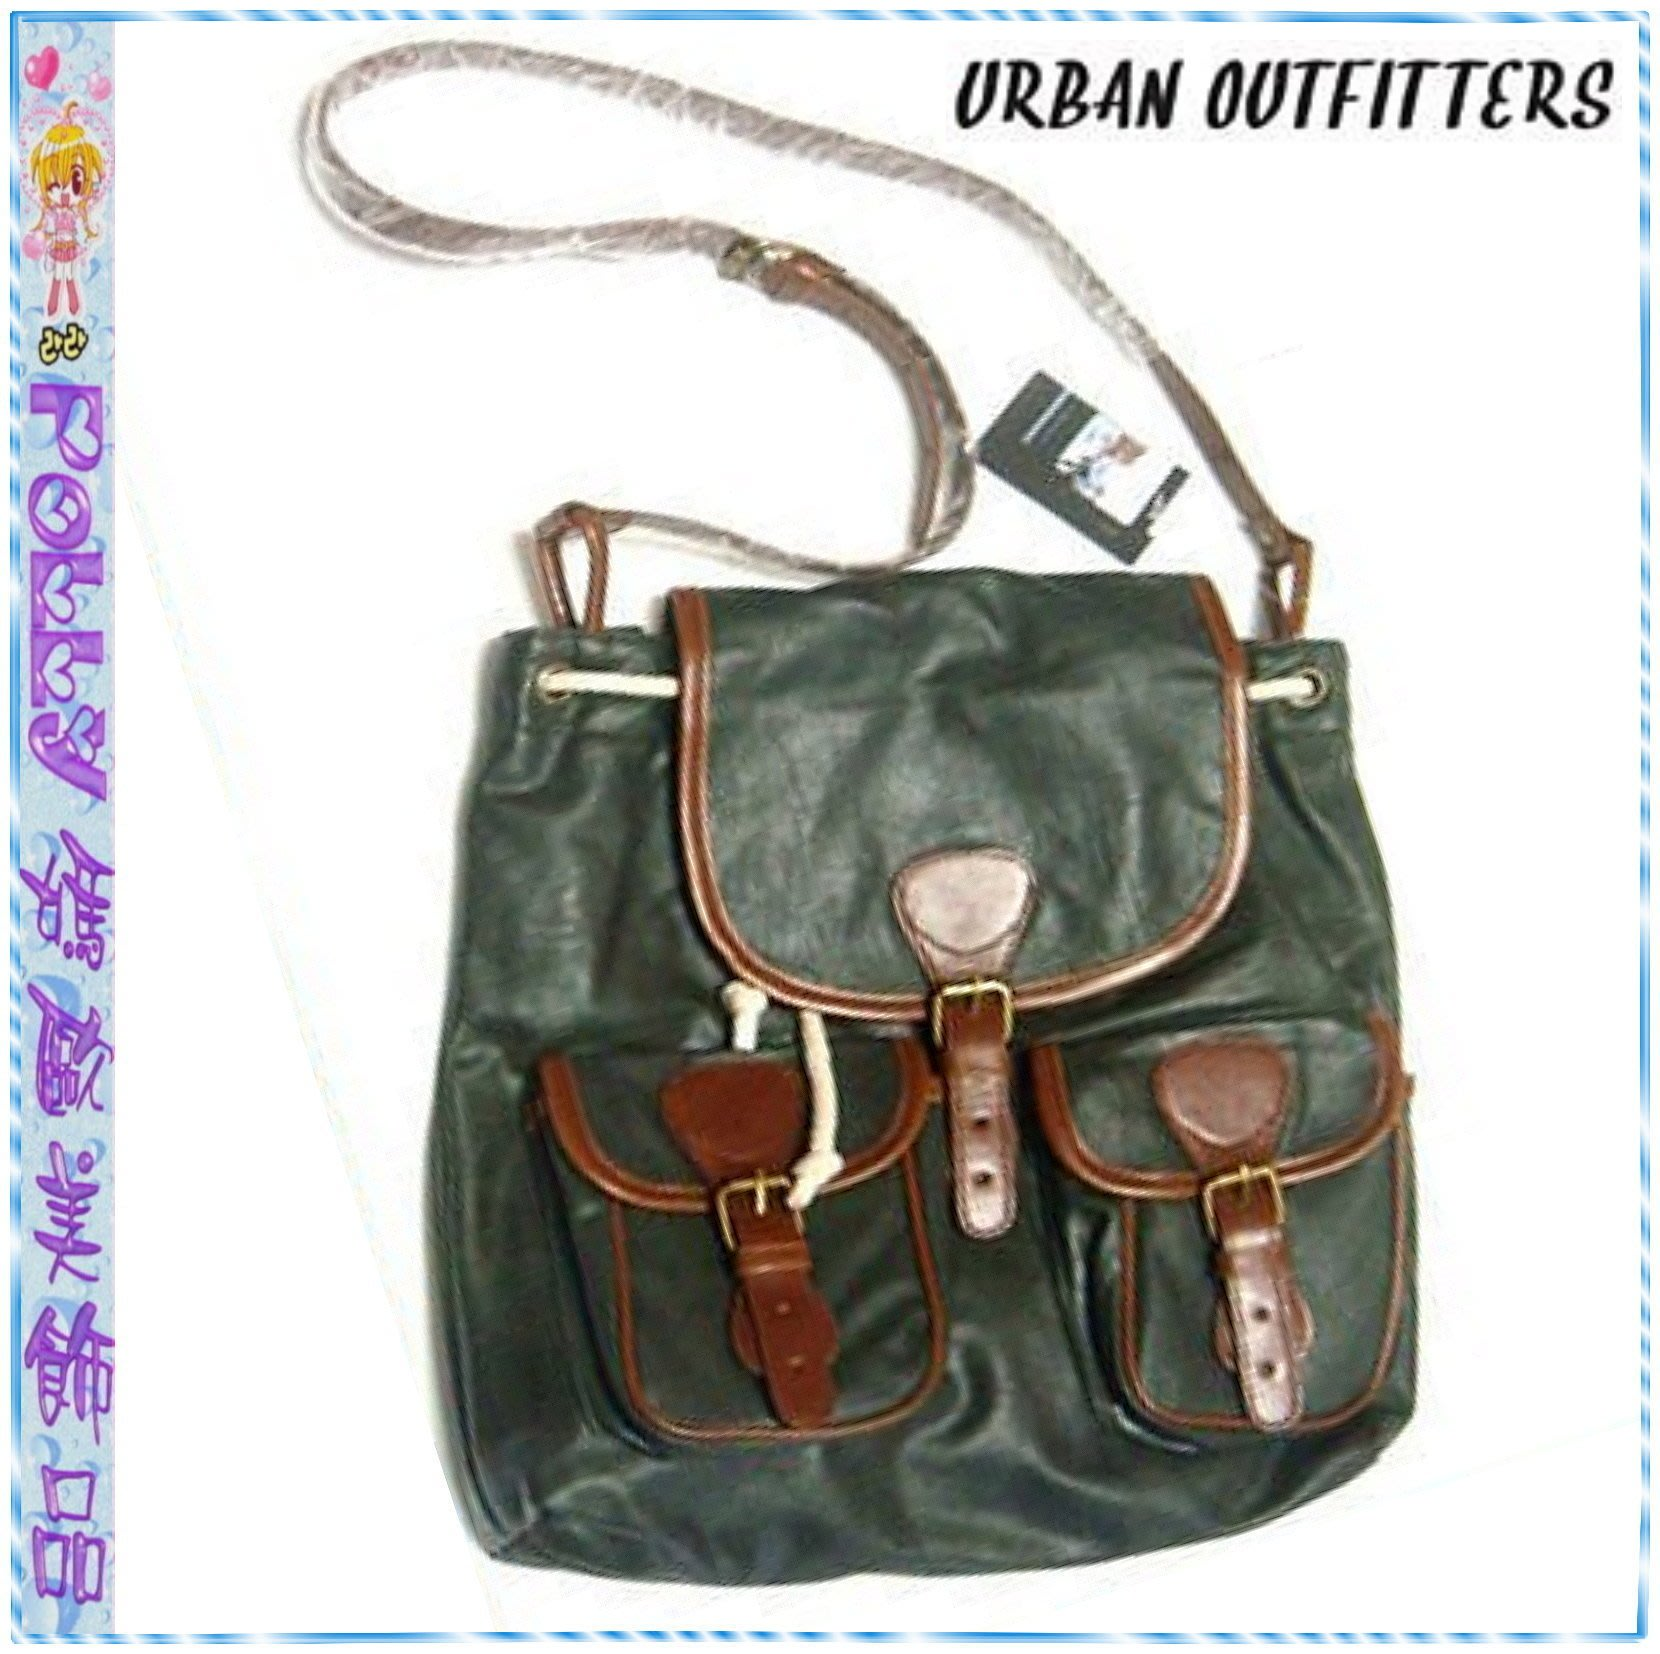 ☆POLLY媽☆Urban outfitters COOPERATIVE棕色滾邊軍綠色皮質水桶斜背包£42